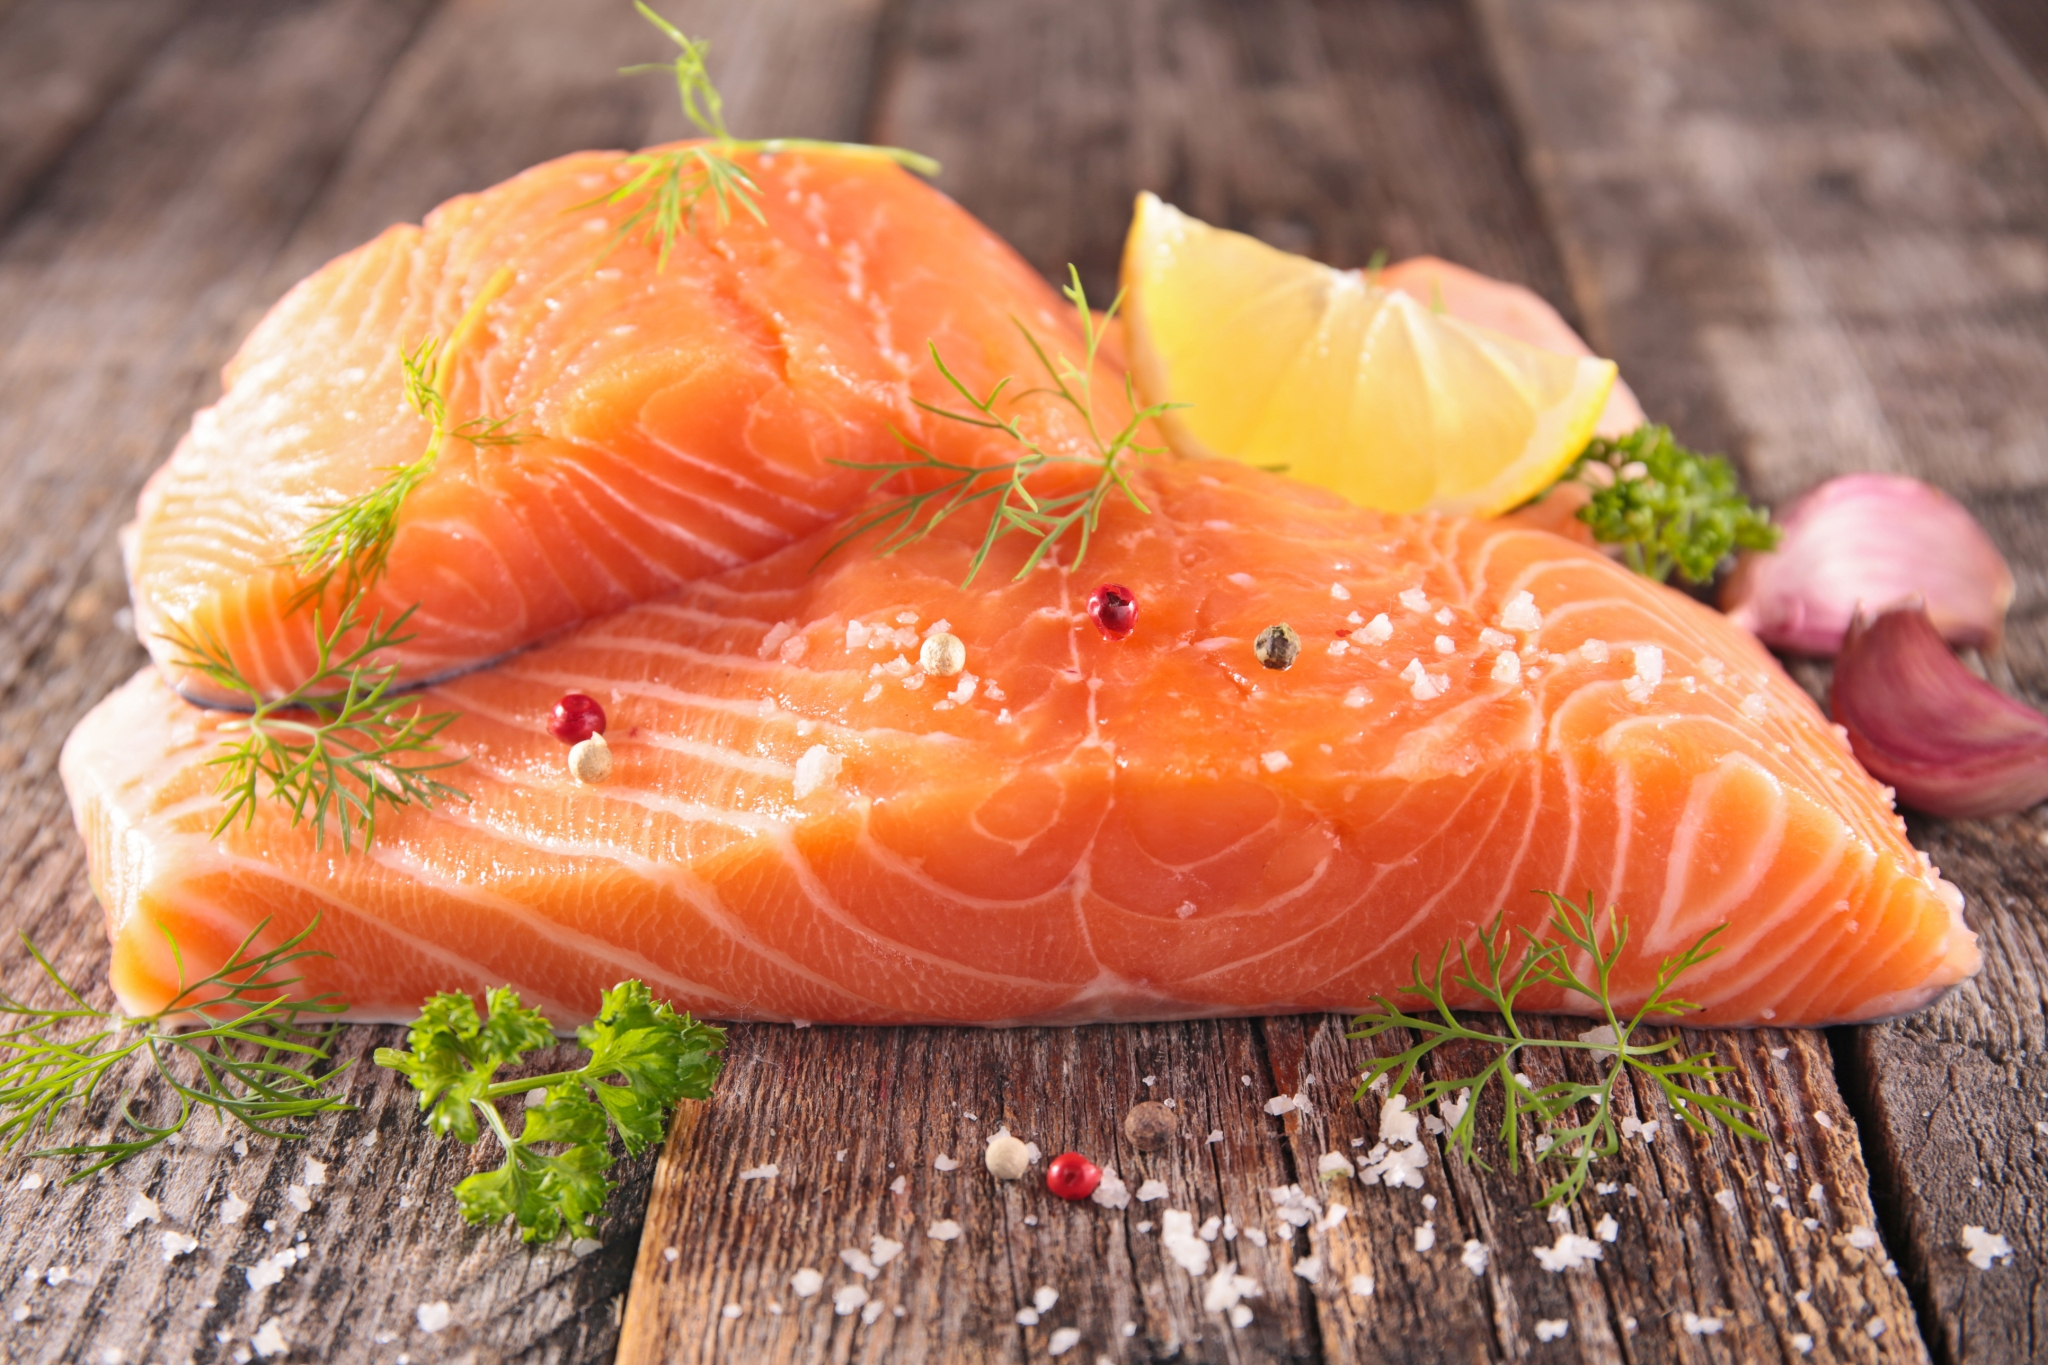 Eating Fish May Help Prevent Asthma: Study